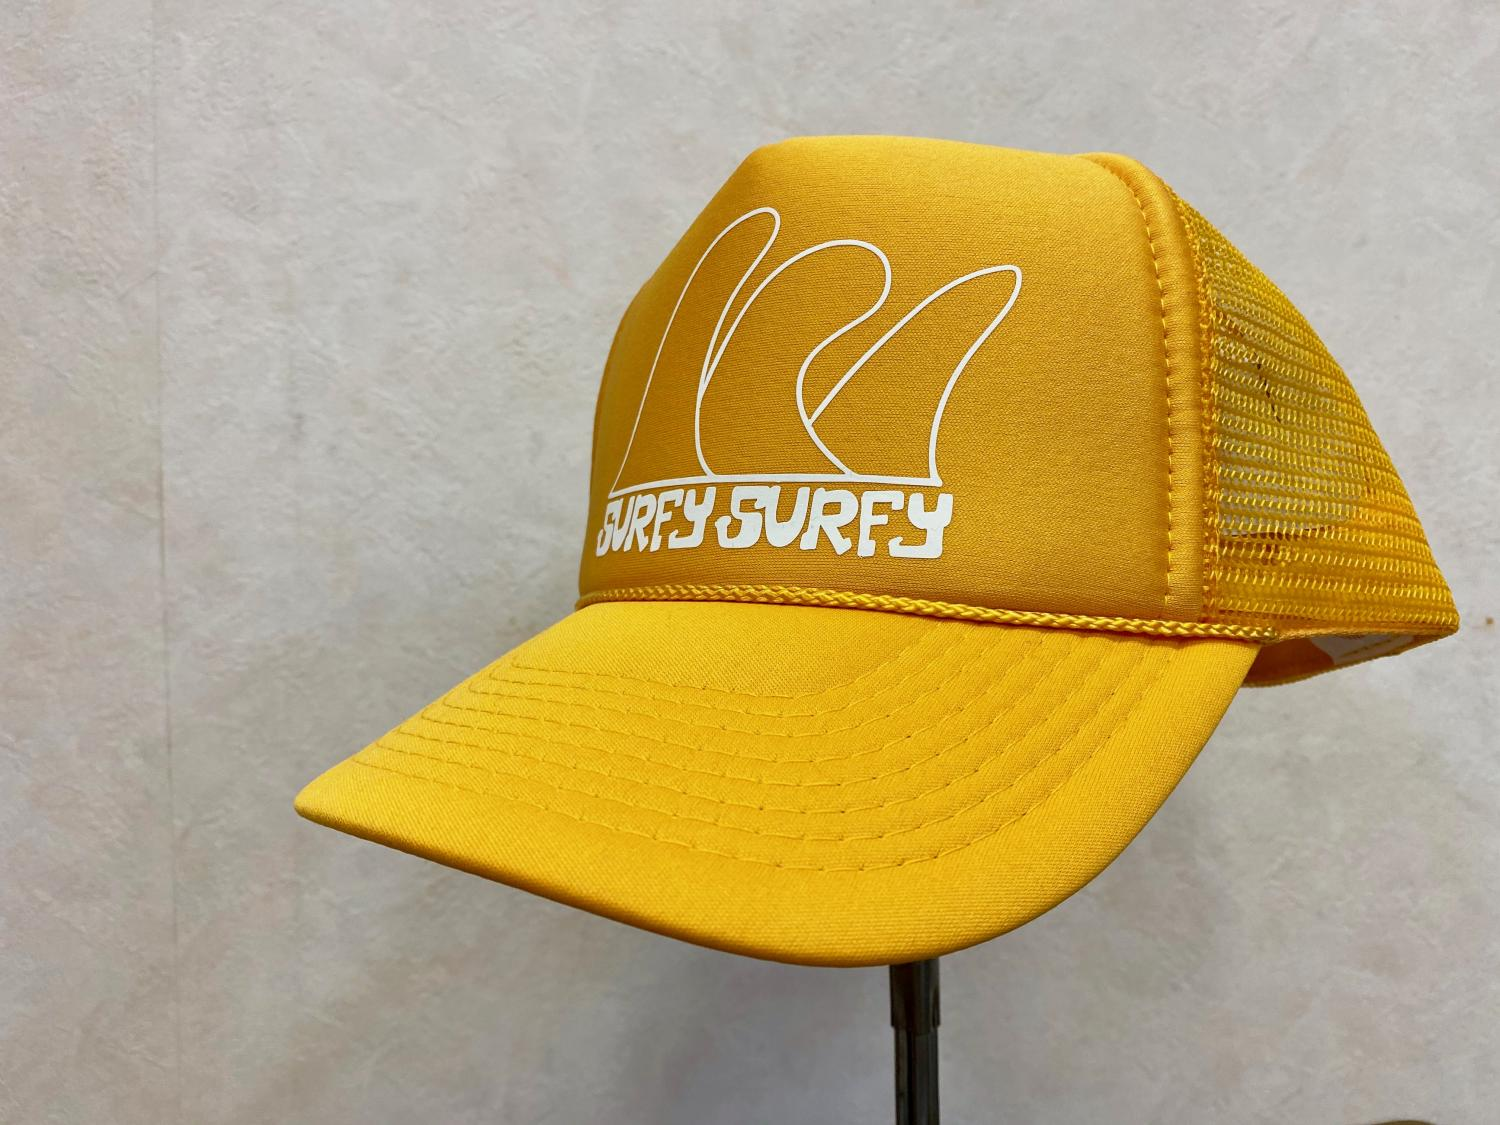 Surfy Surfy Fin Design TRUCKER HAT